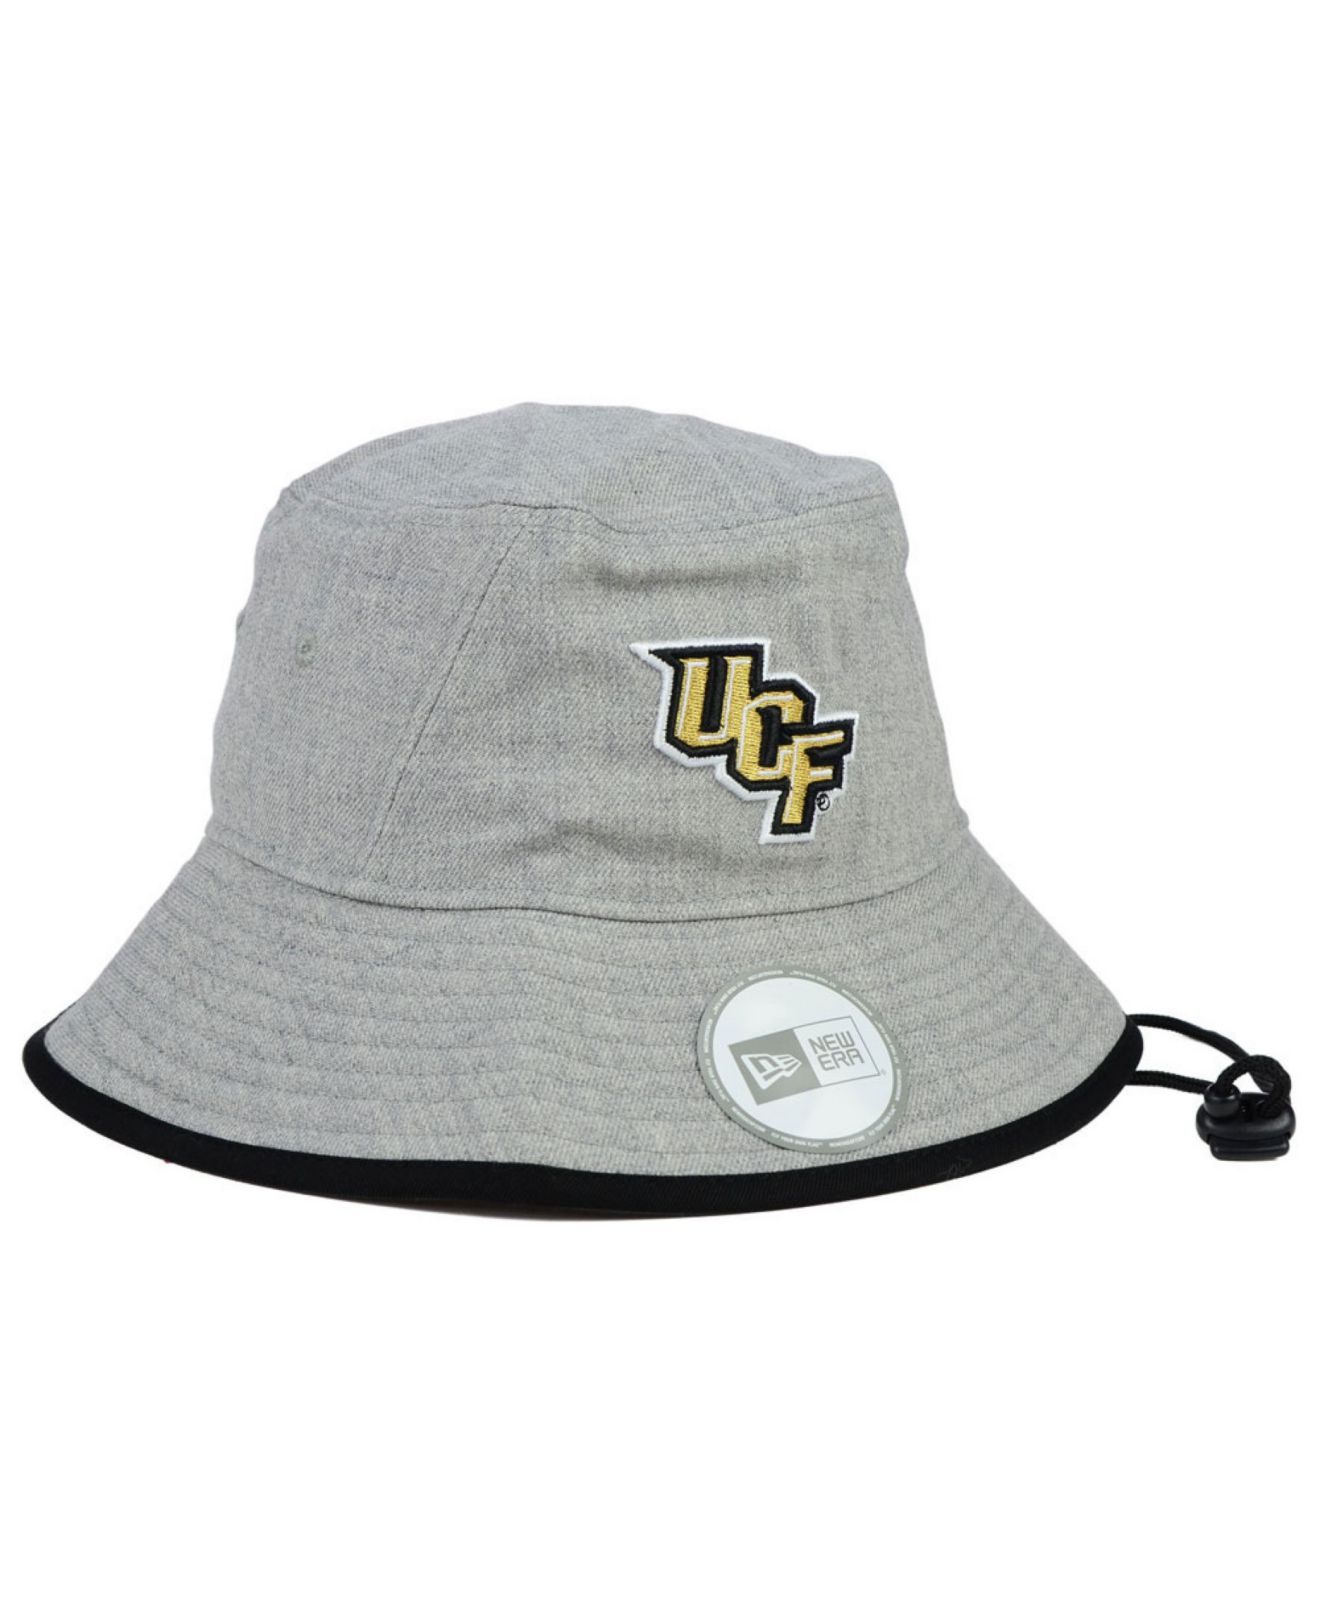 34dfd2d5fbe Lyst - KTZ Ucf Knights Tip Bucket Hat in Gray for Men